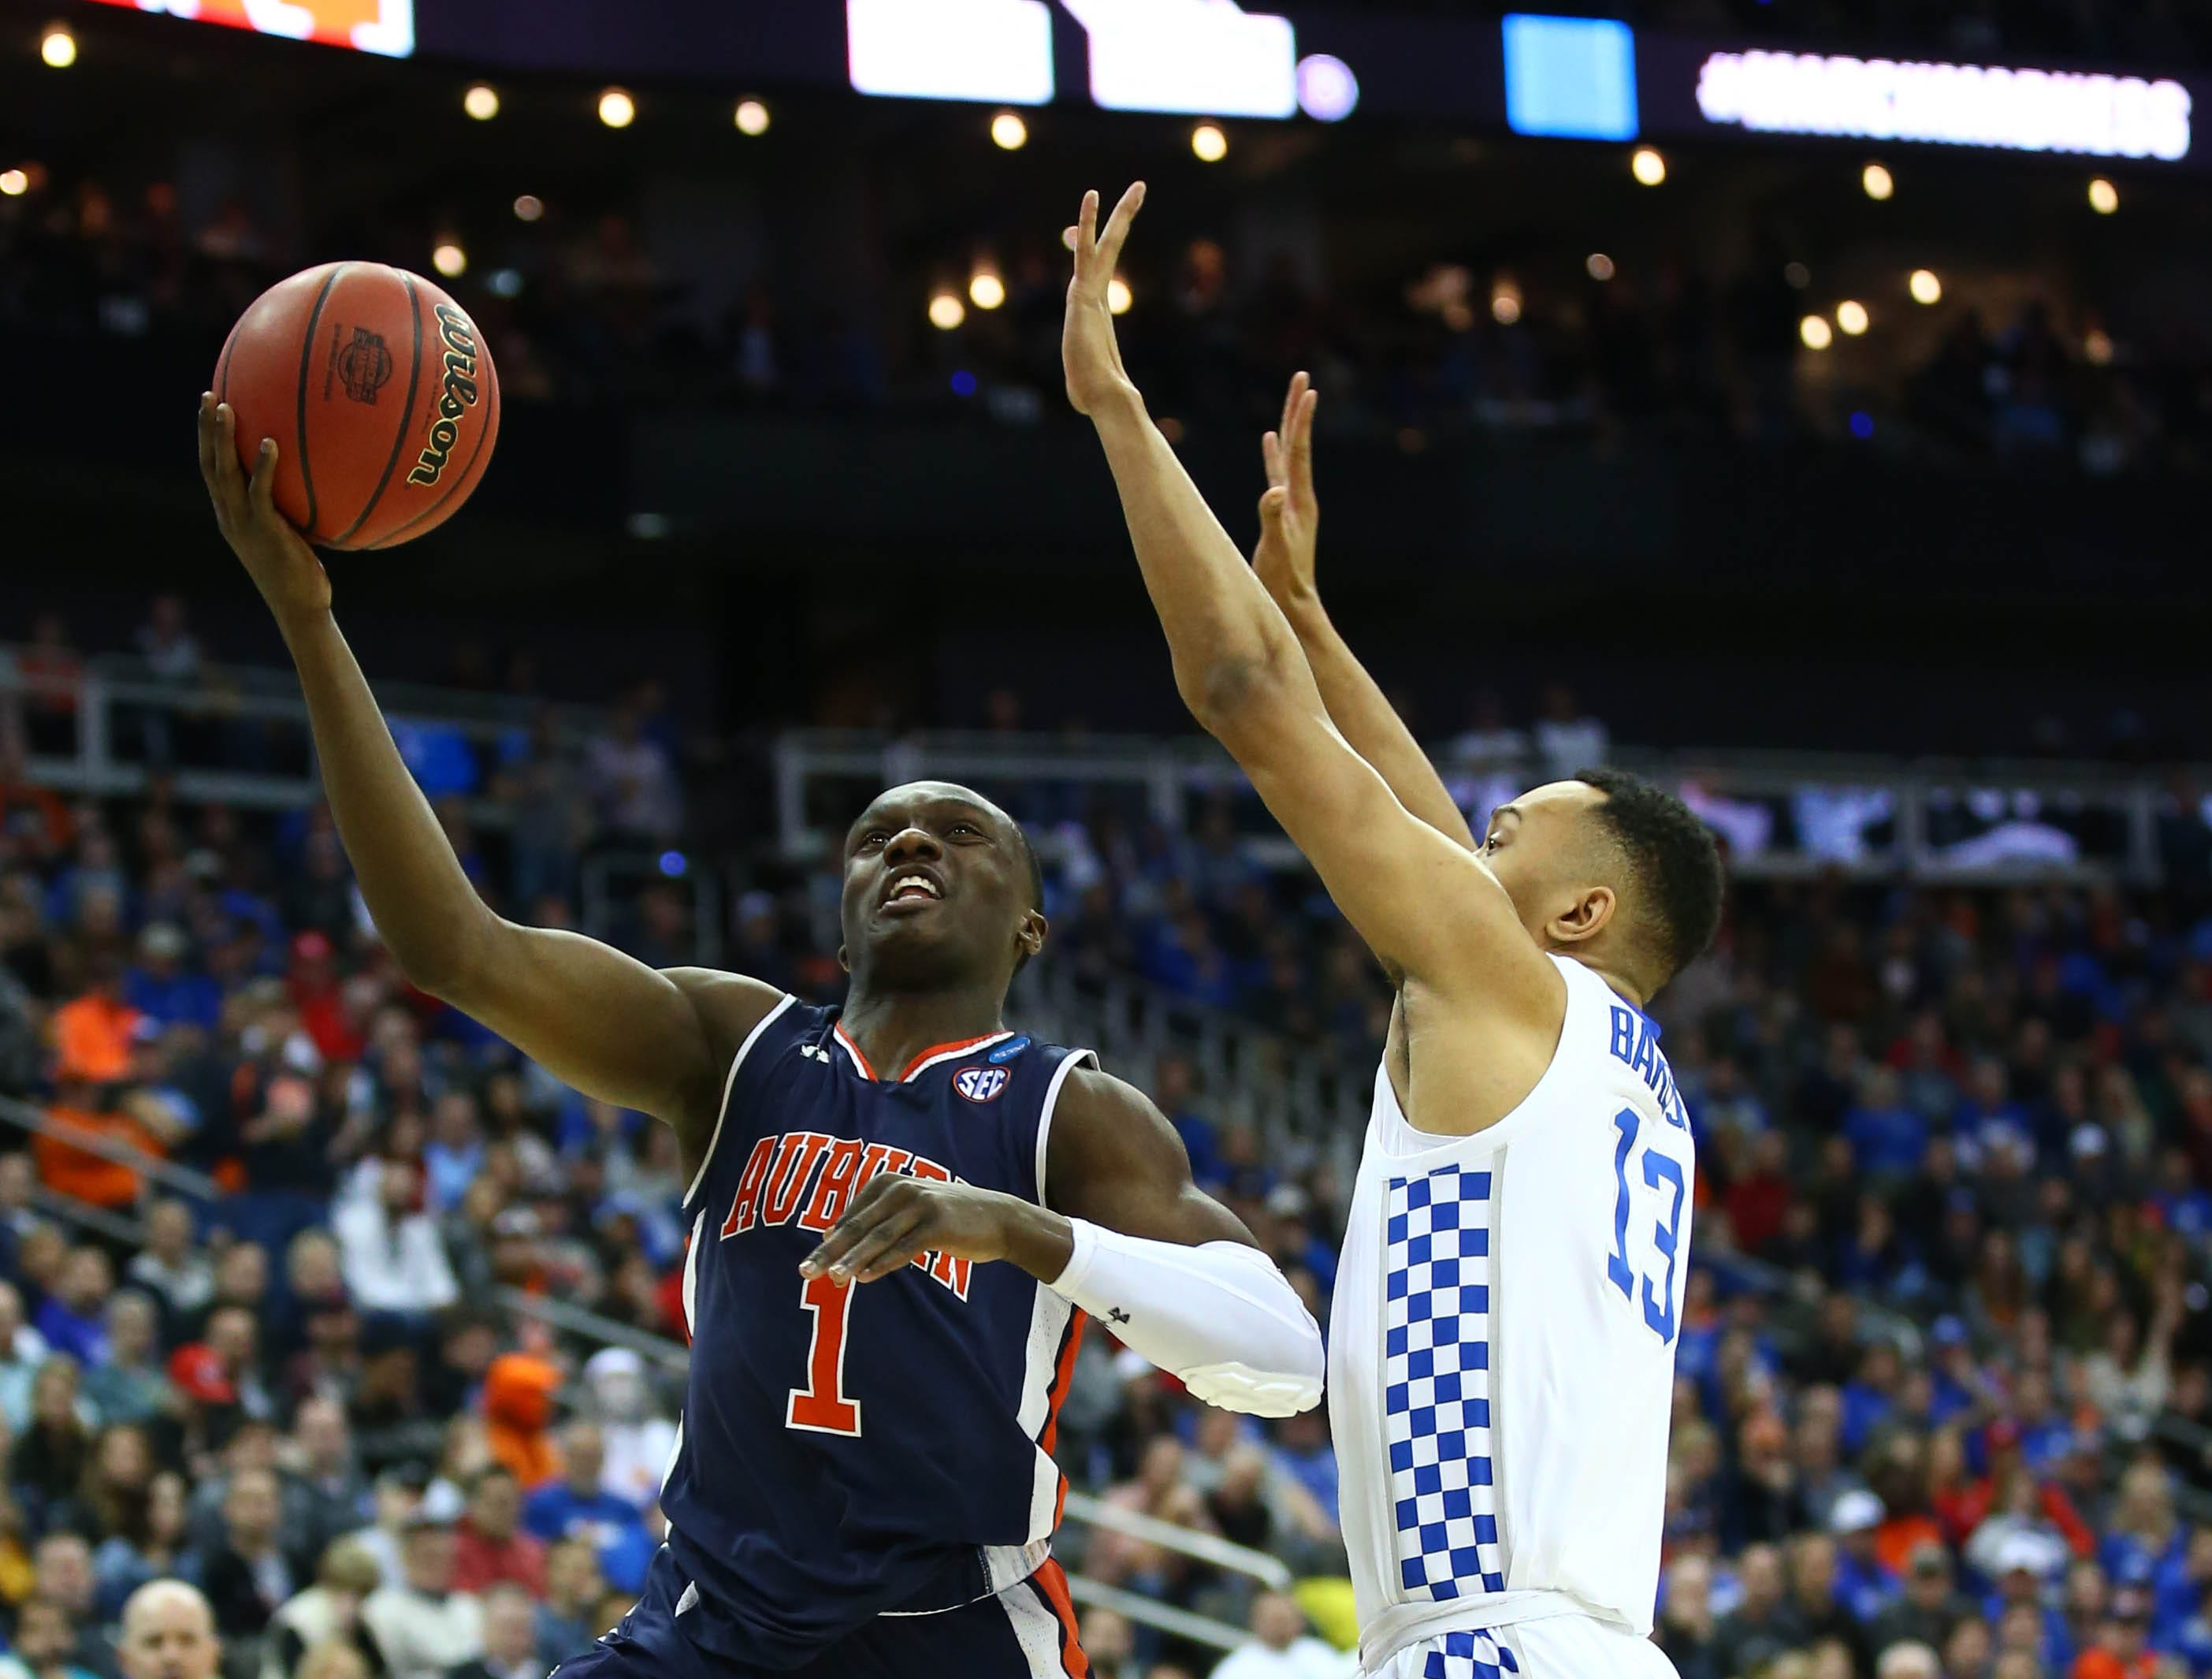 Mar 31, 2019; Kansas City, MO, United States; Auburn Tigers guard Jared Harper (1) shoots against Kentucky Wildcats guard Jemarl Baker Jr. (13) during the first half in the championship game of the midwest regional of the 2019 NCAA Tournament at Sprint Center. Mandatory Credit: Jay Biggerstaff-USA TODAY Sports